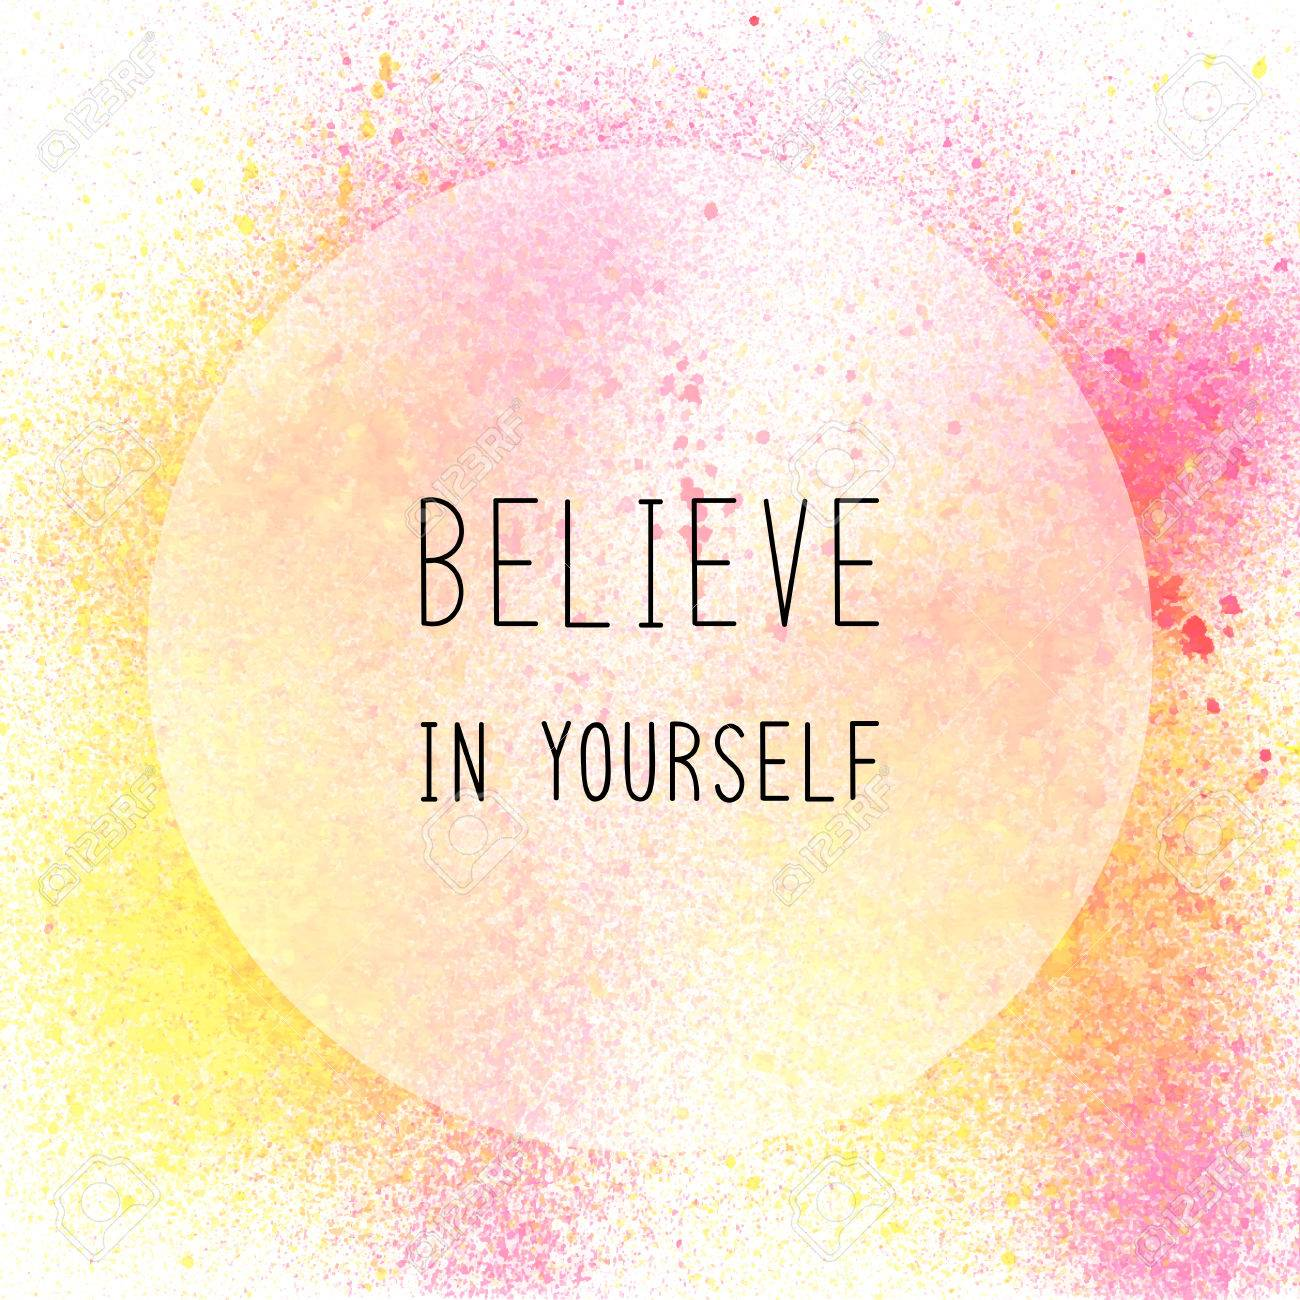 Believe In Yourself. Inspirational Quote On Yellow And Pink Spray Paint  Background Stock Photo